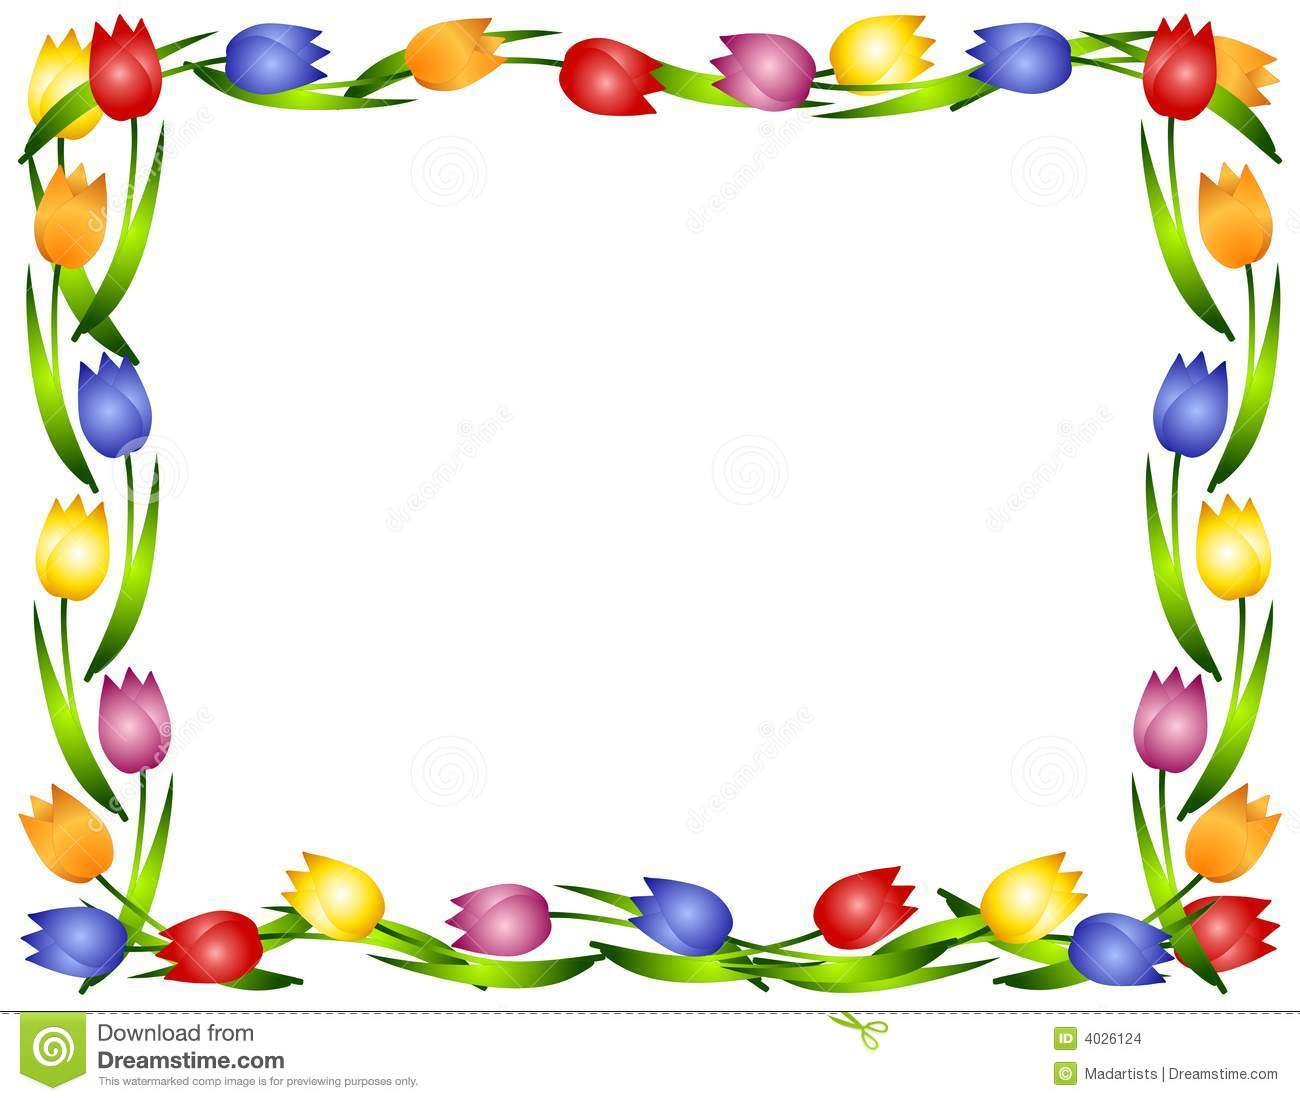 Art deco spring border clipart clipart images gallery for.